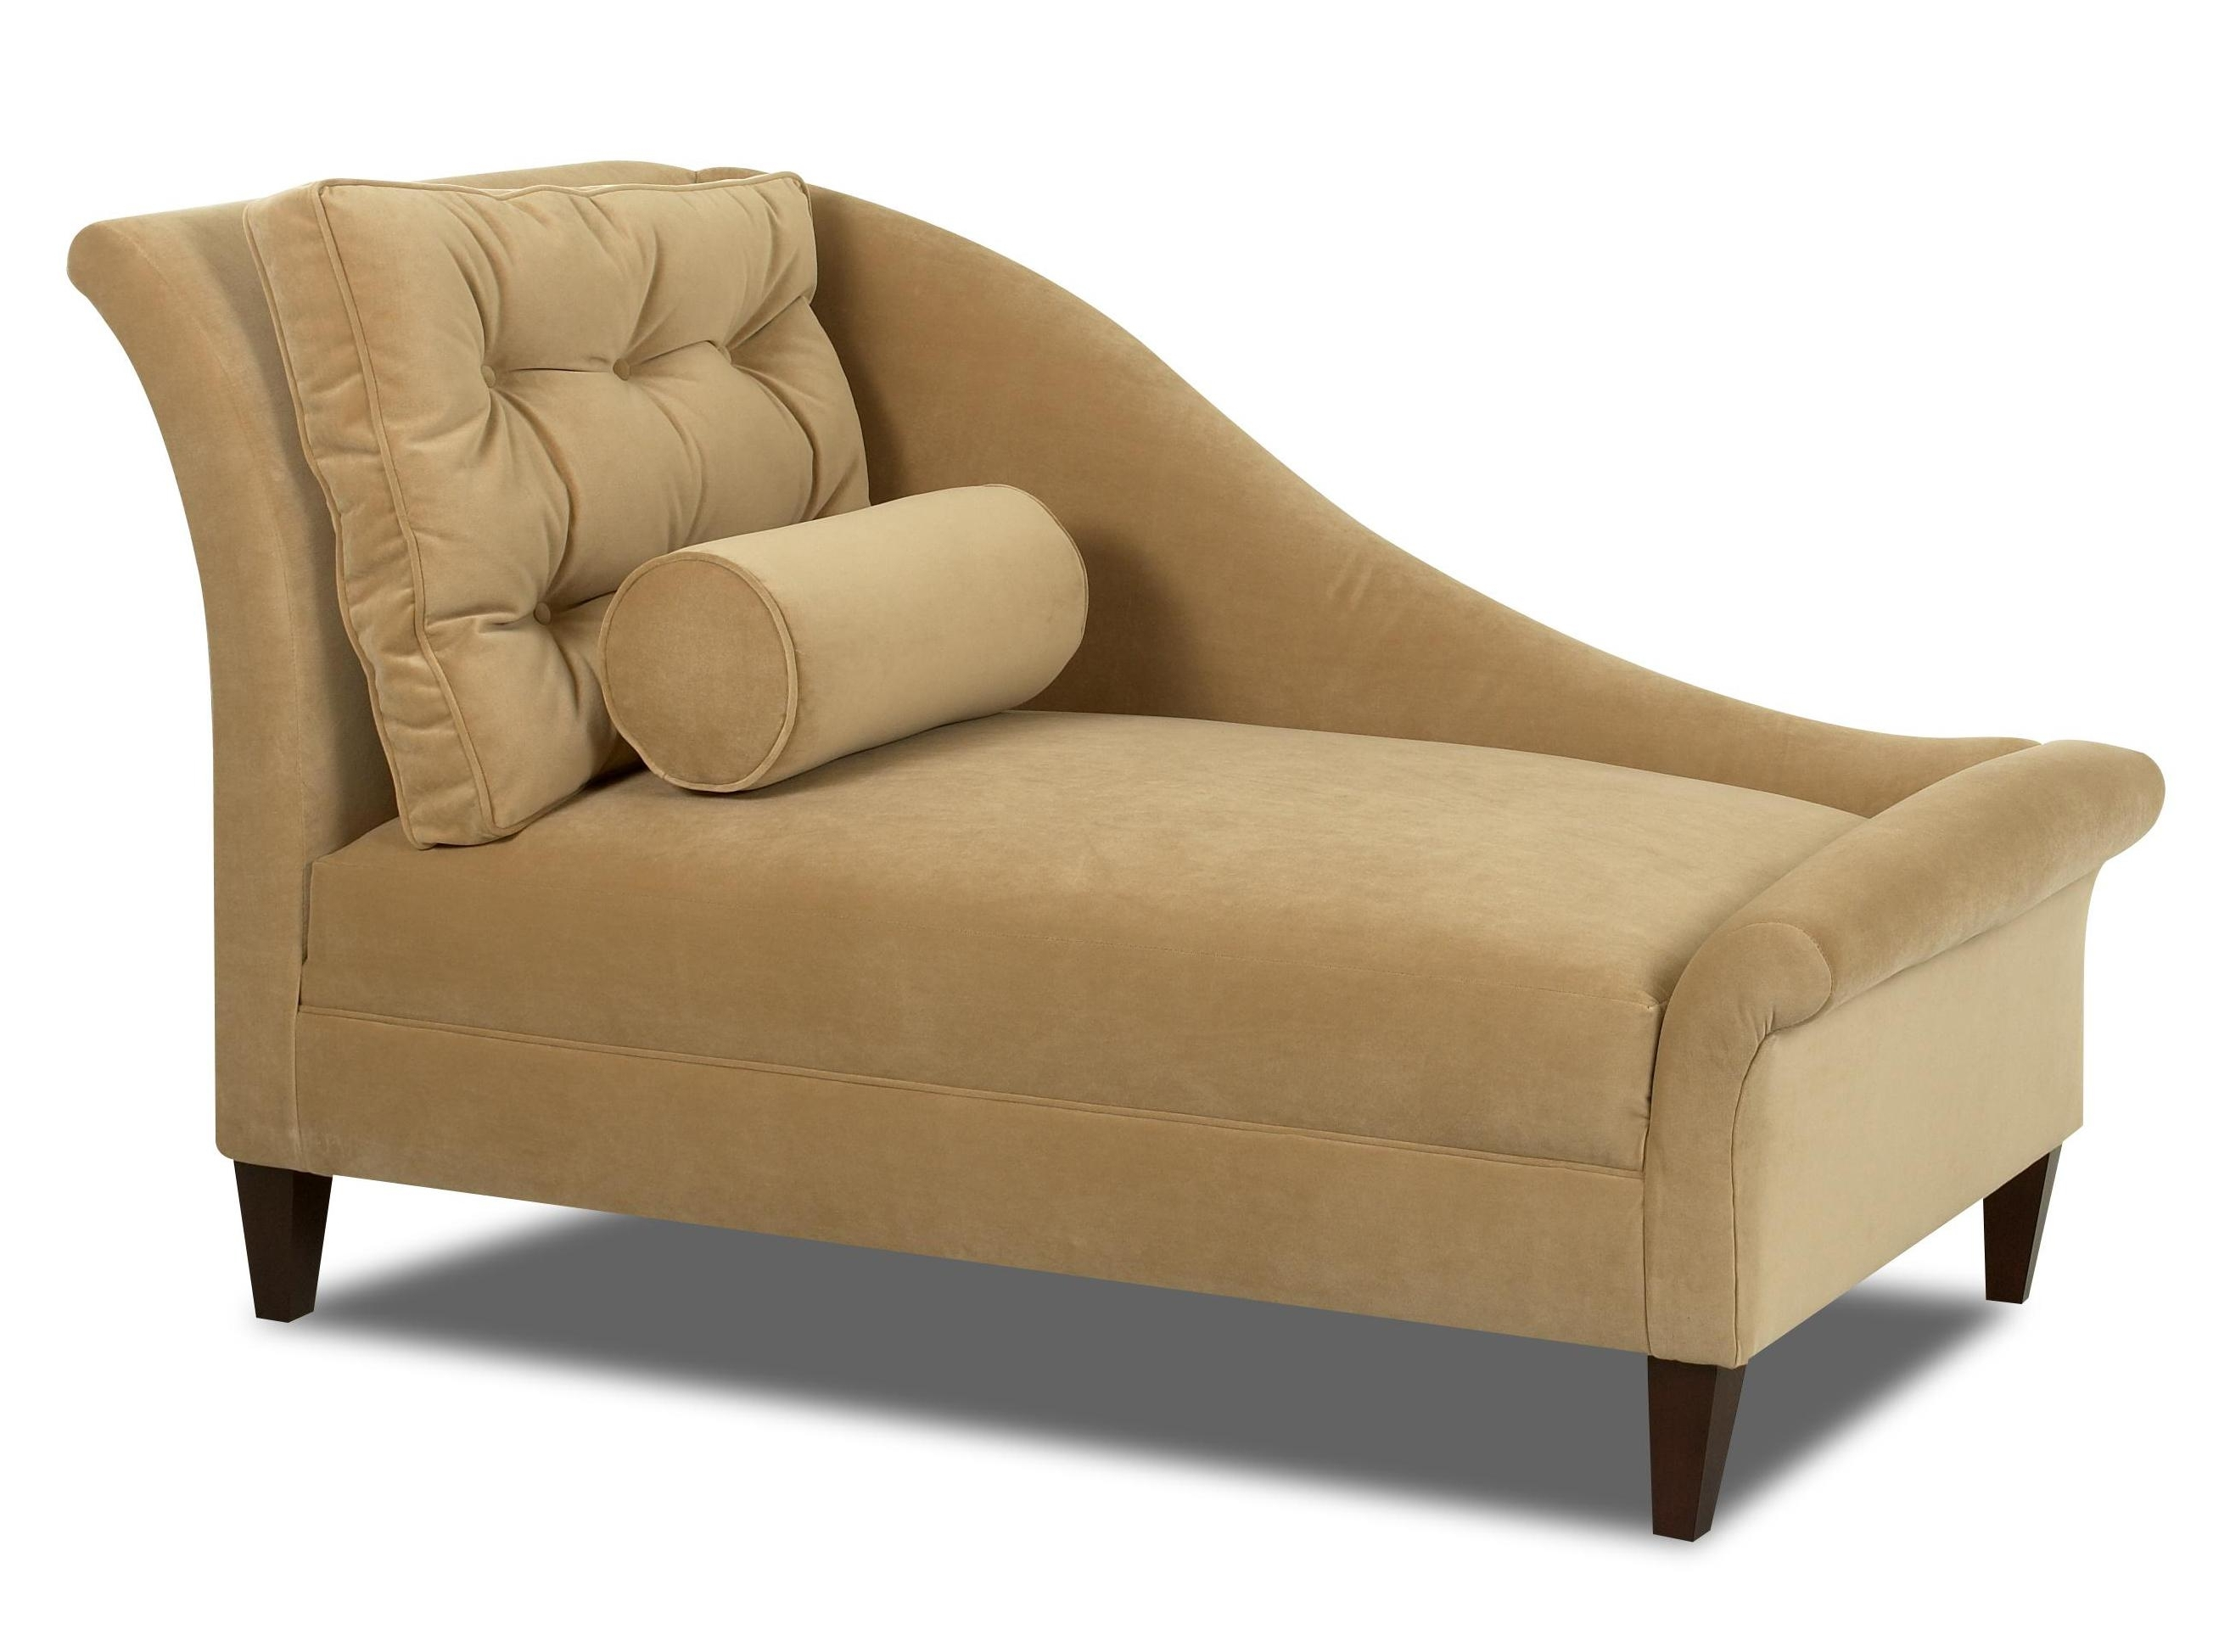 Small Chaise Lounges Within Well Known Convertible Chair : Small Chaise Lounge Chair Tufted Chaise Lounge (View 13 of 15)